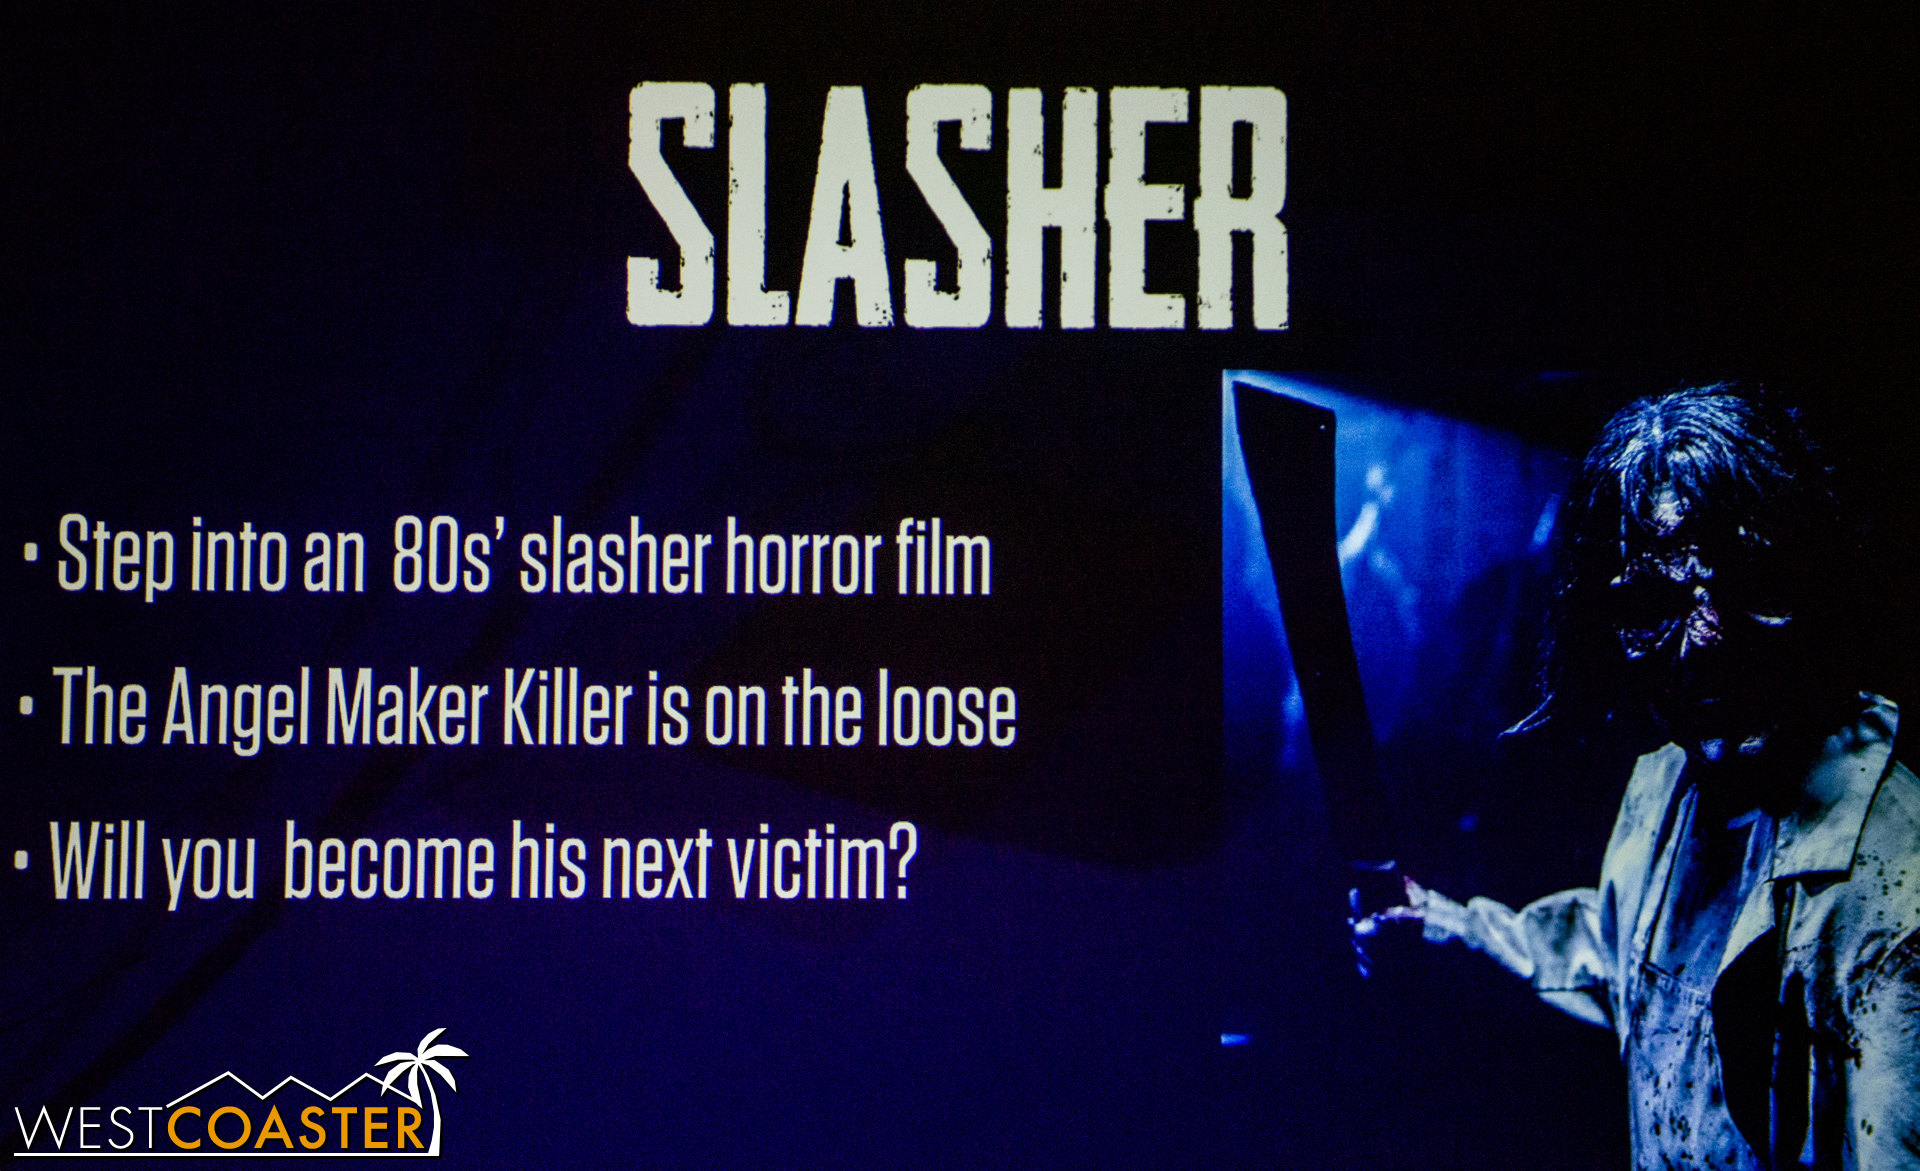 """Slasher puts guests into a  Friday the 13th  or  Halloween  slasher flick. In this attraction, guests must escape the """"Angel Maker Killer."""" Besides that, not much other information was given, but it sounds fun!"""